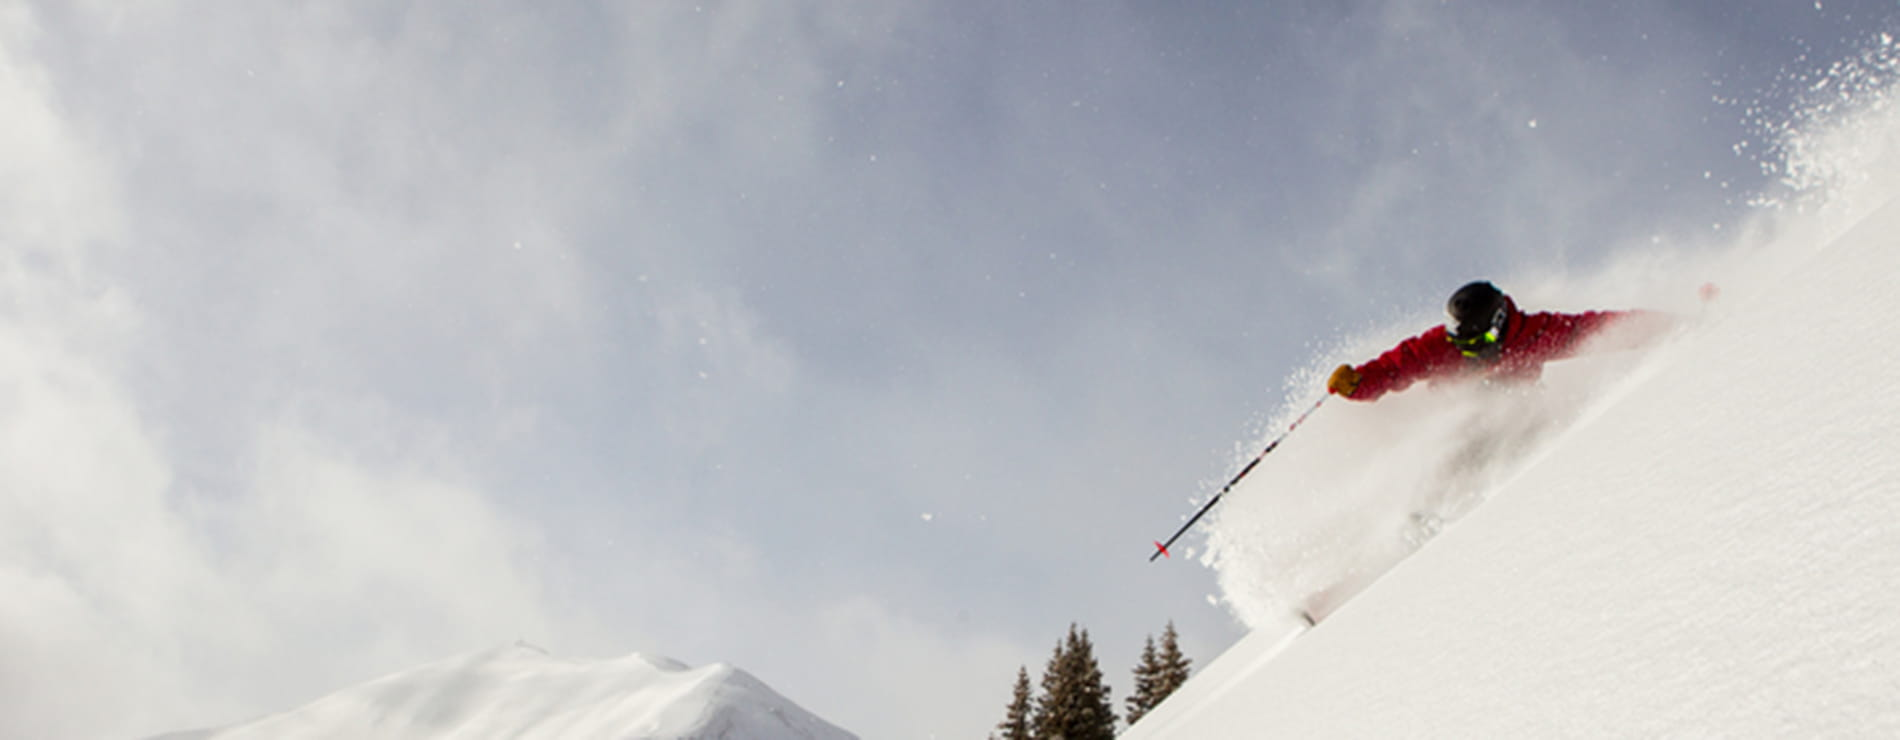 Skier in Powder - Large | Limelight Hotels | Aspen